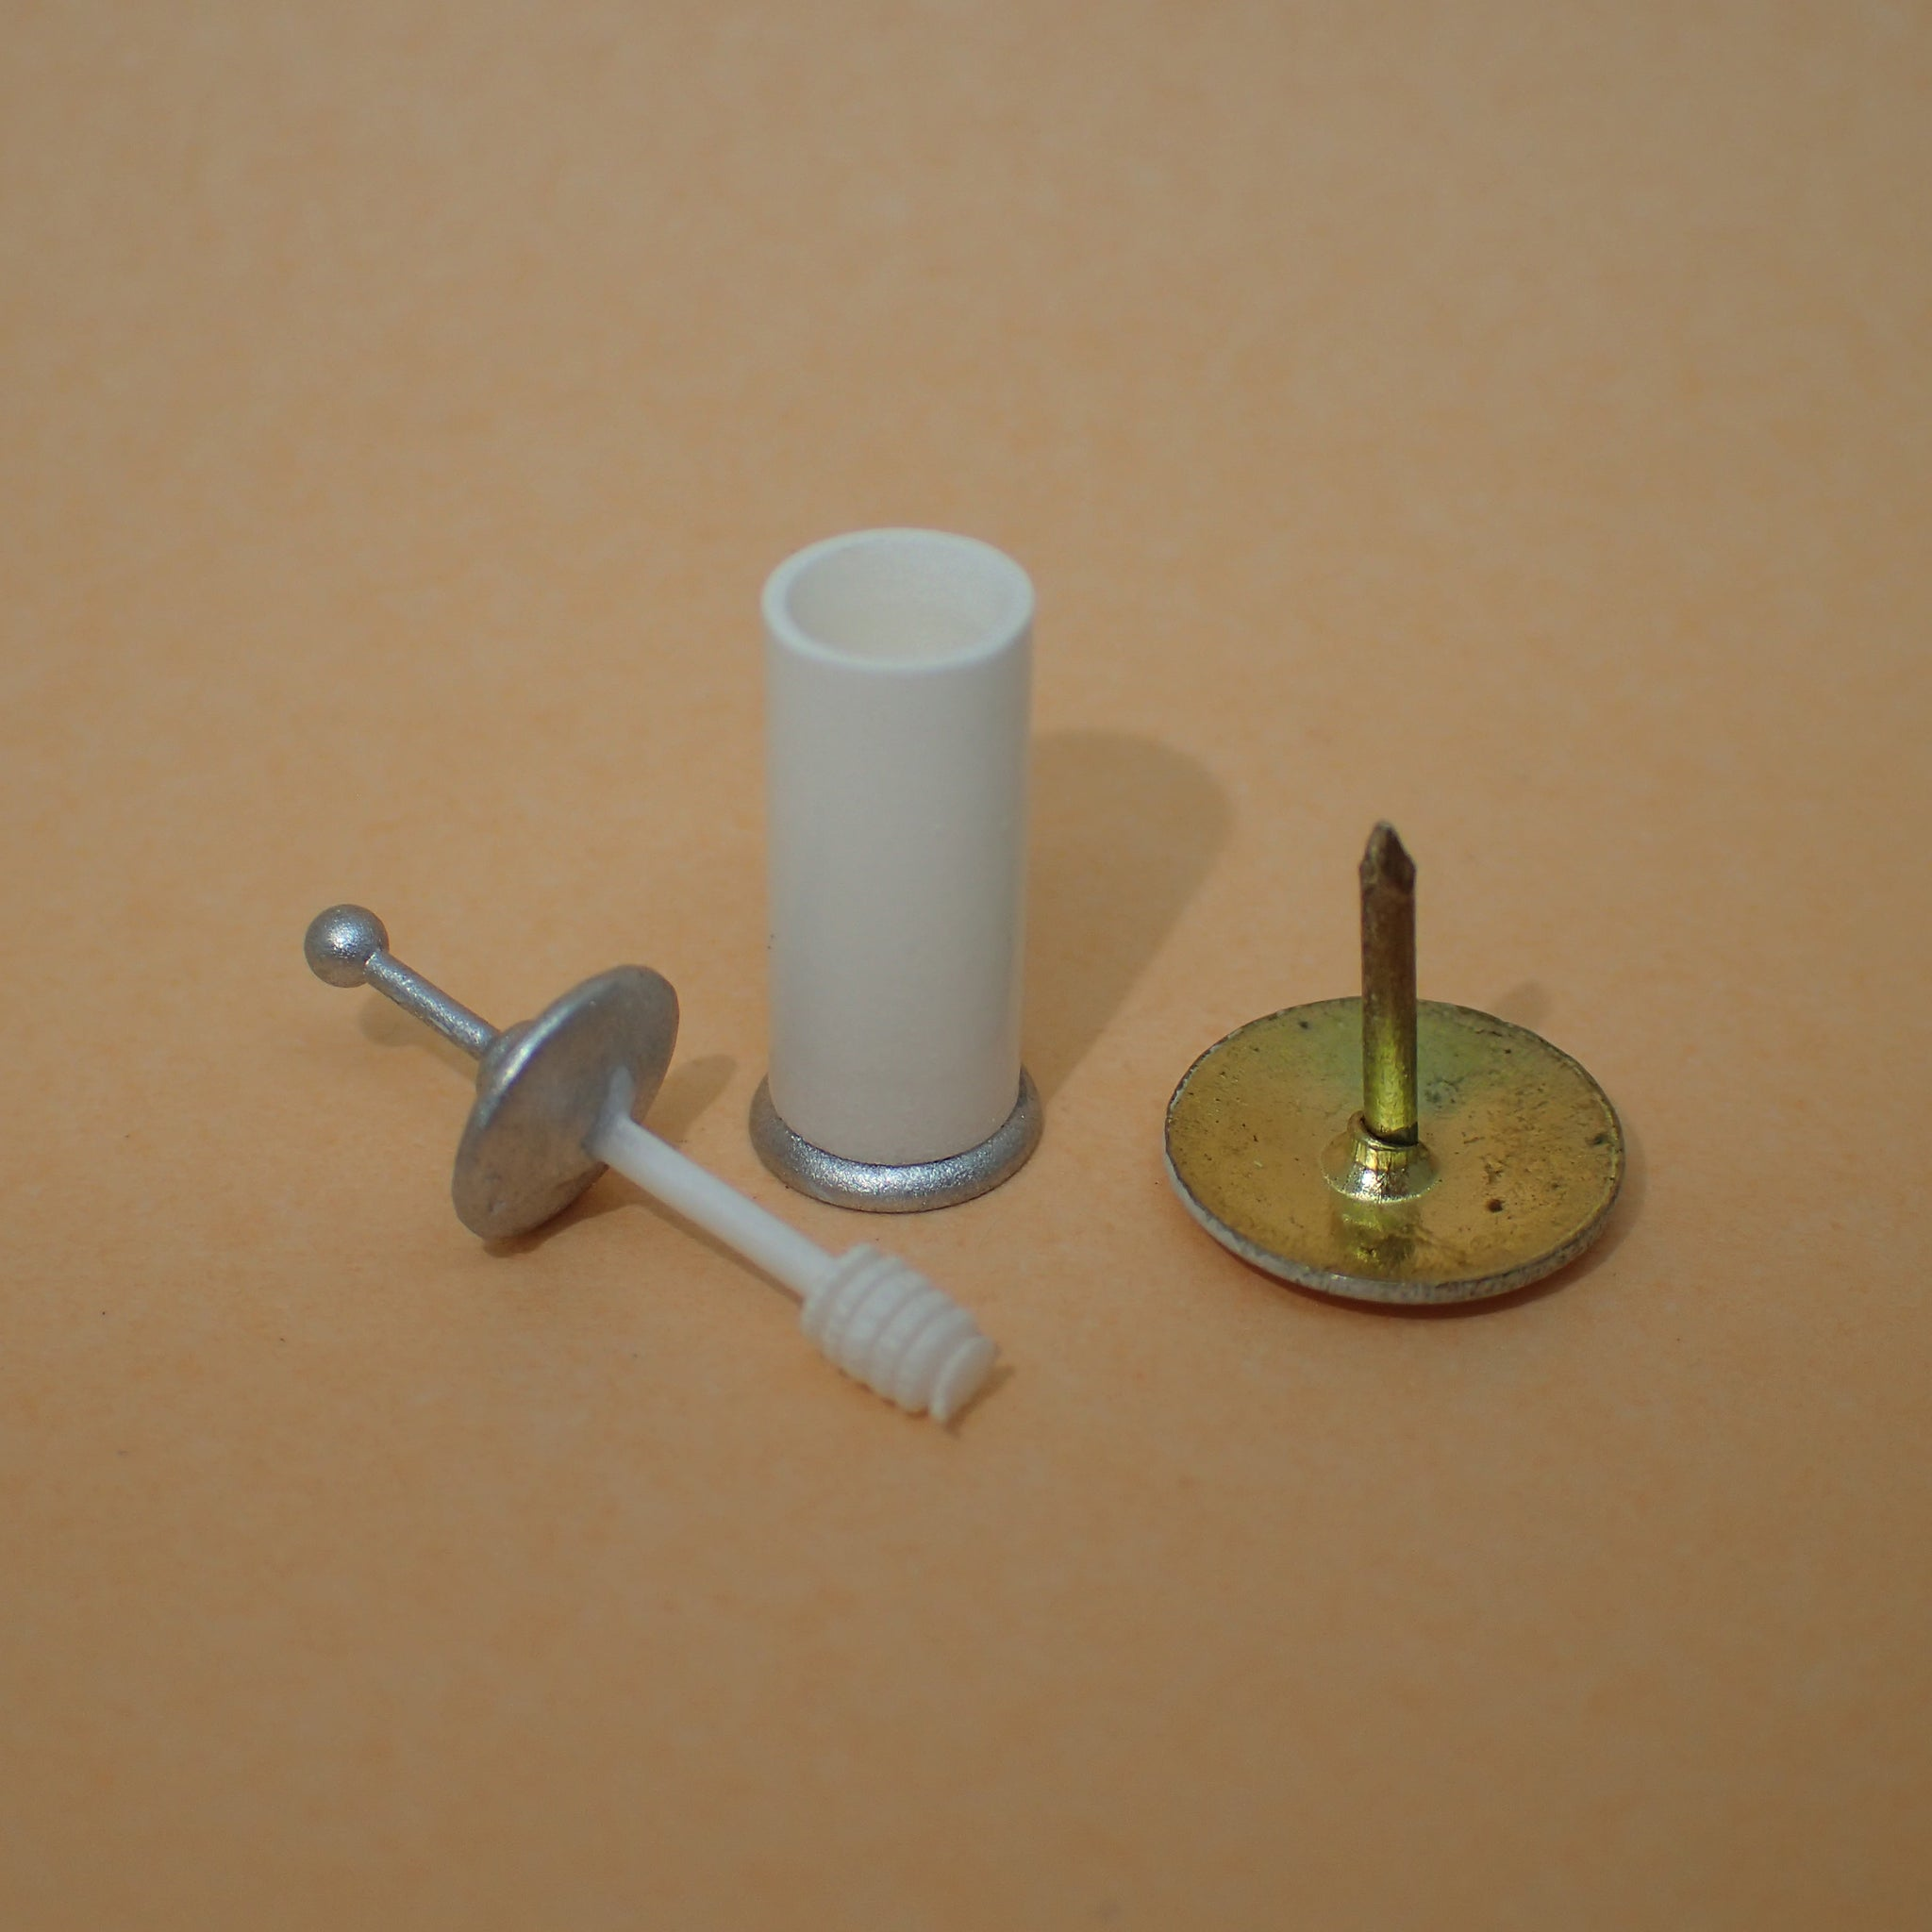 Traditional toilet brush, 1/24th scale